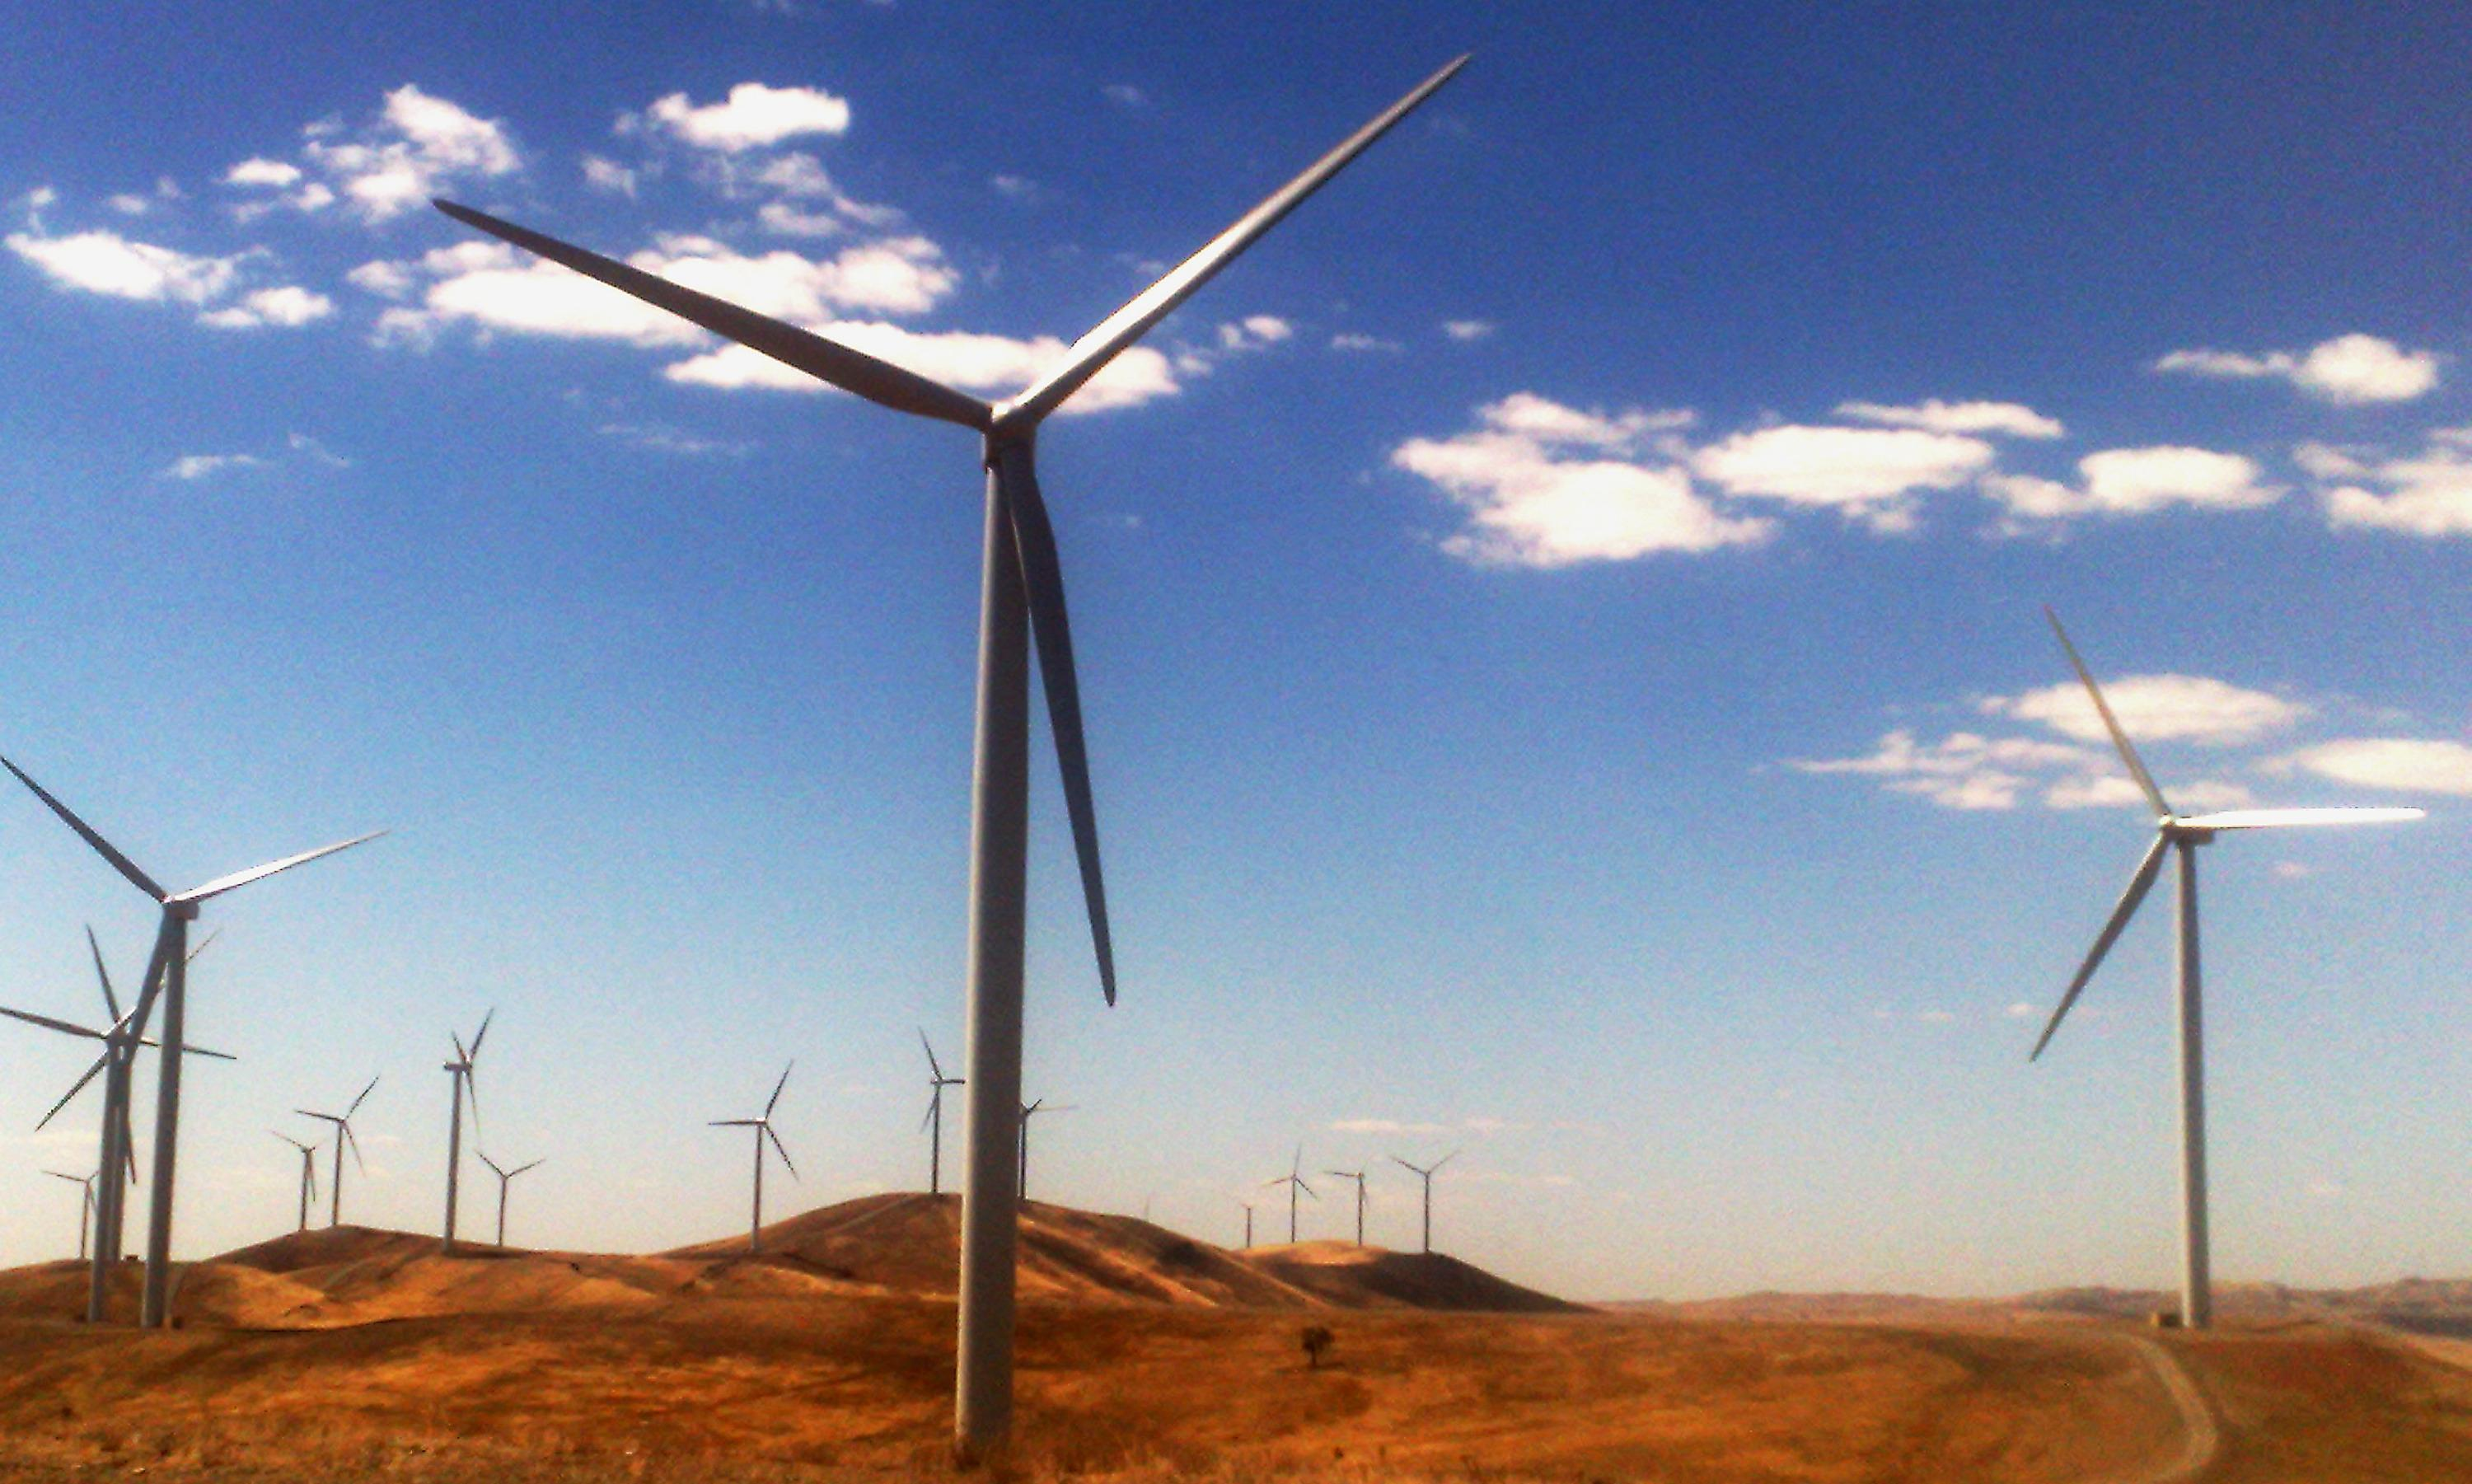 While the government is in denial, the states are making staggering progress on renewable energy